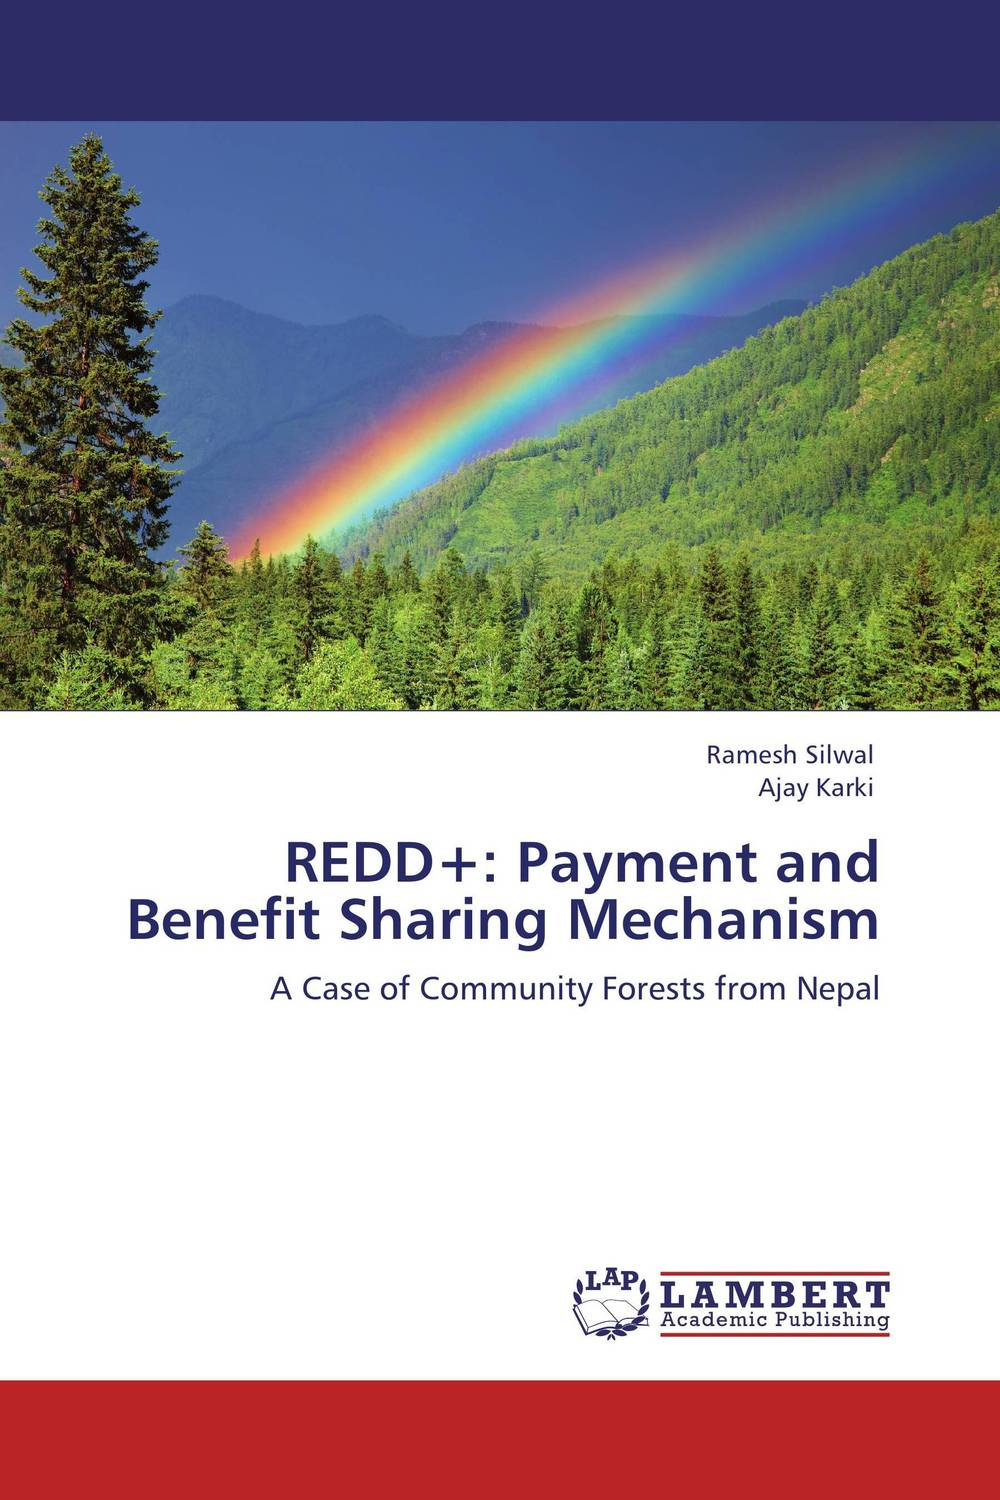 REDD+: Payment and Benefit Sharing Mechanism